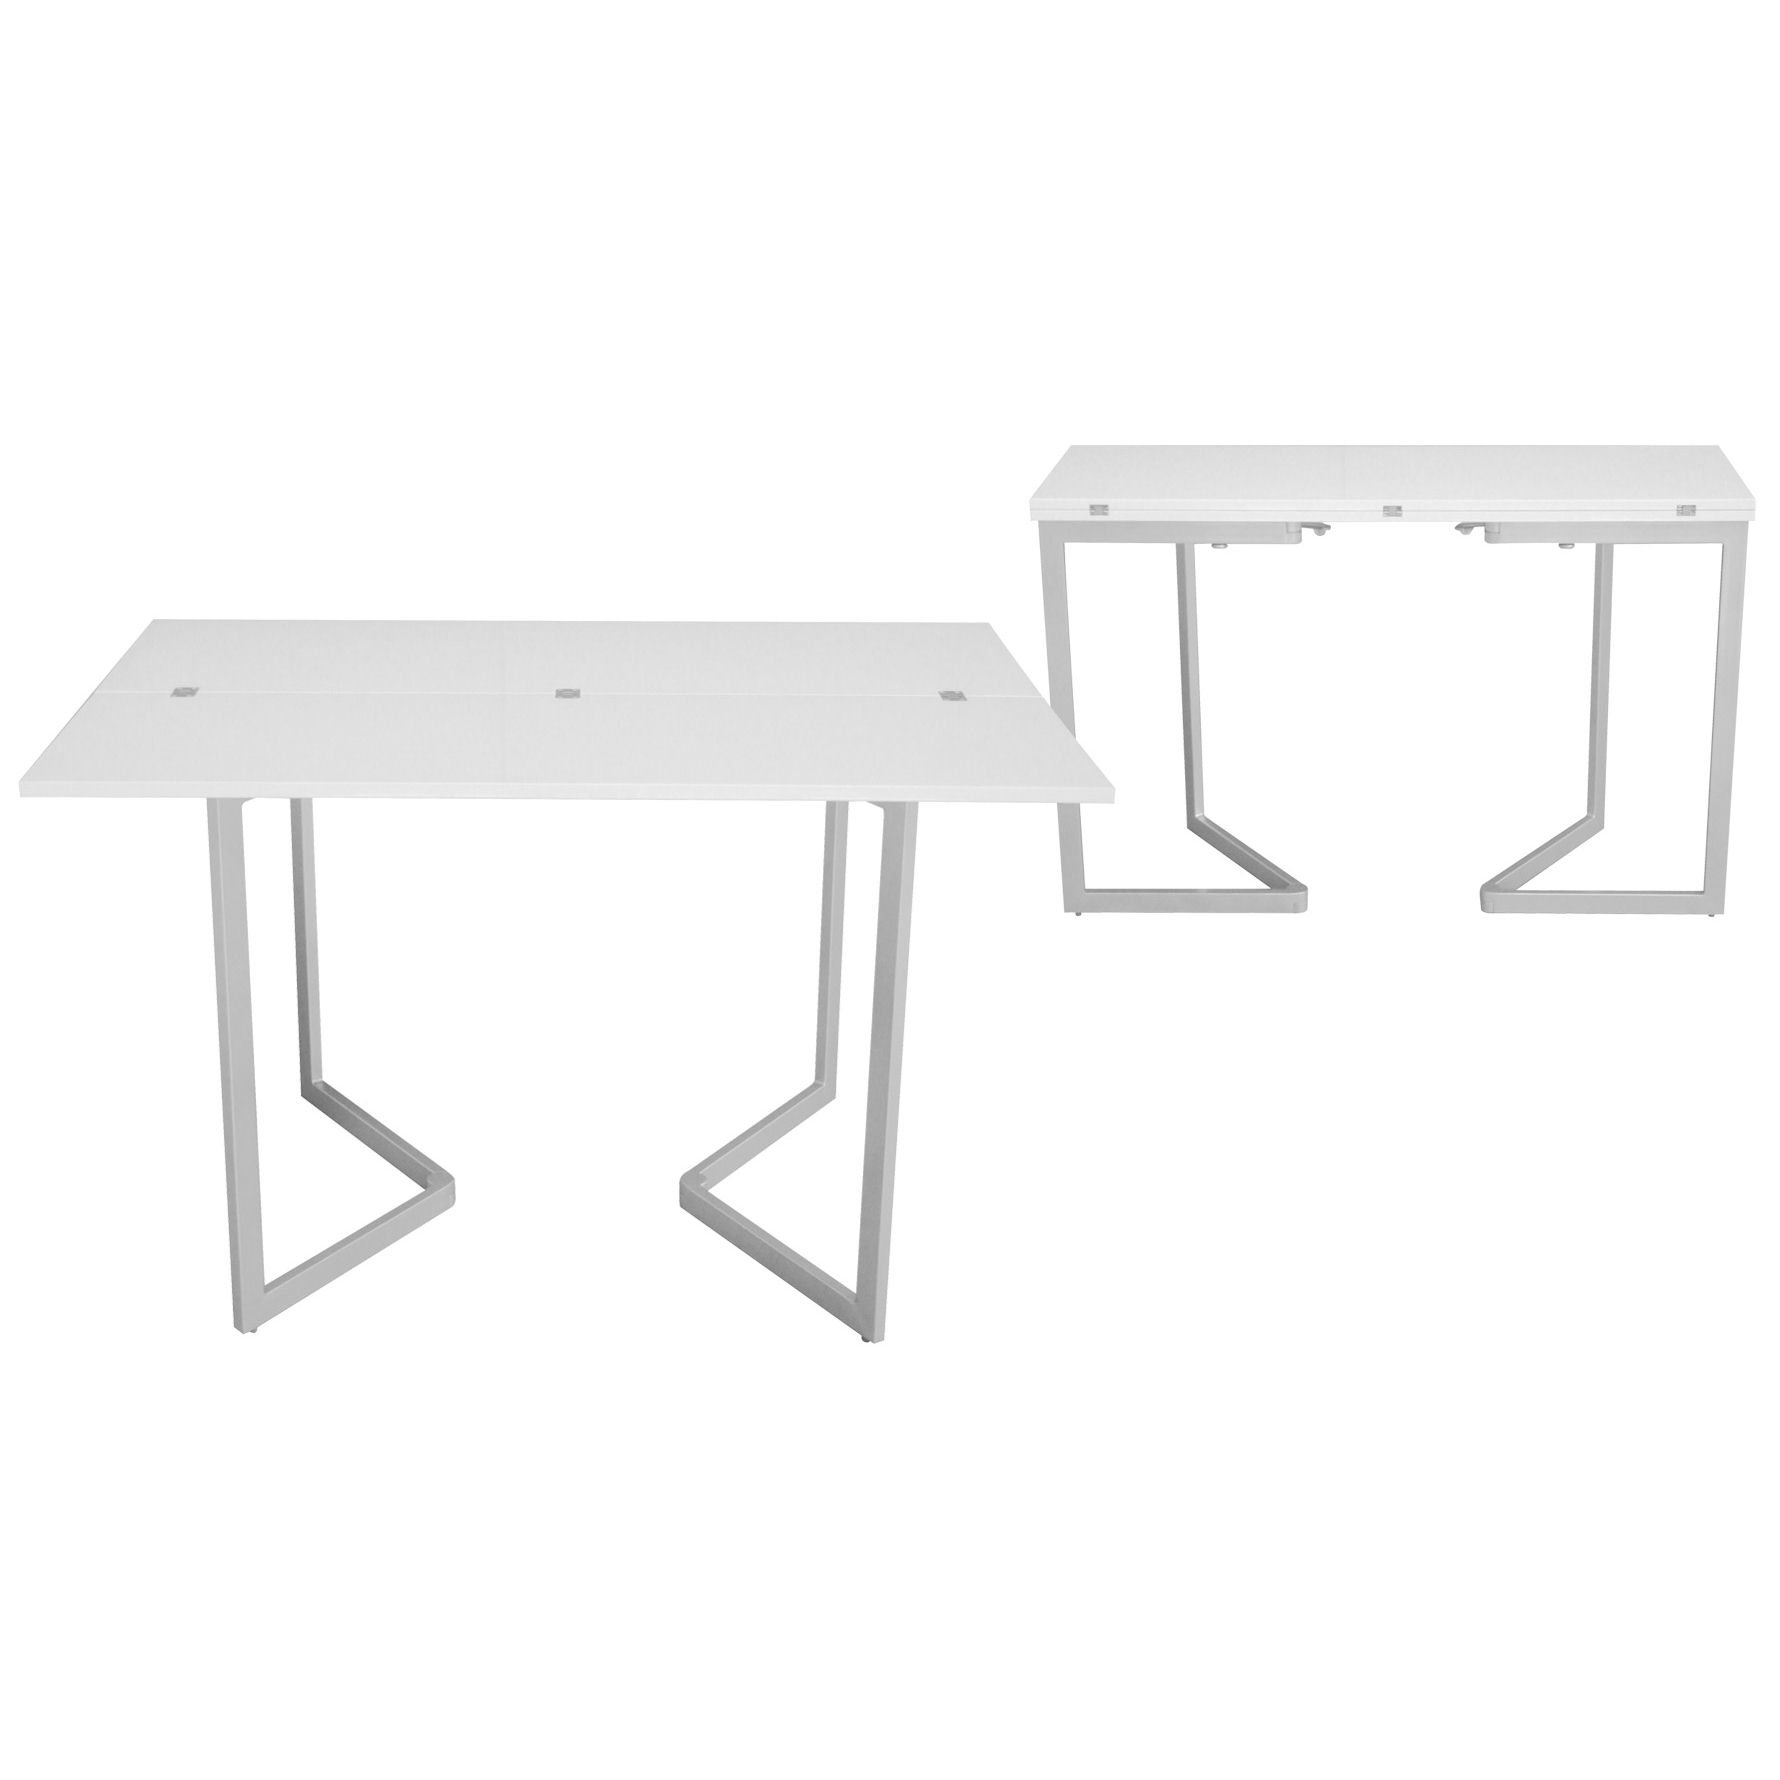 Deco in paris table console extensible blanche laquee for Table ronde laquee blanc extensible